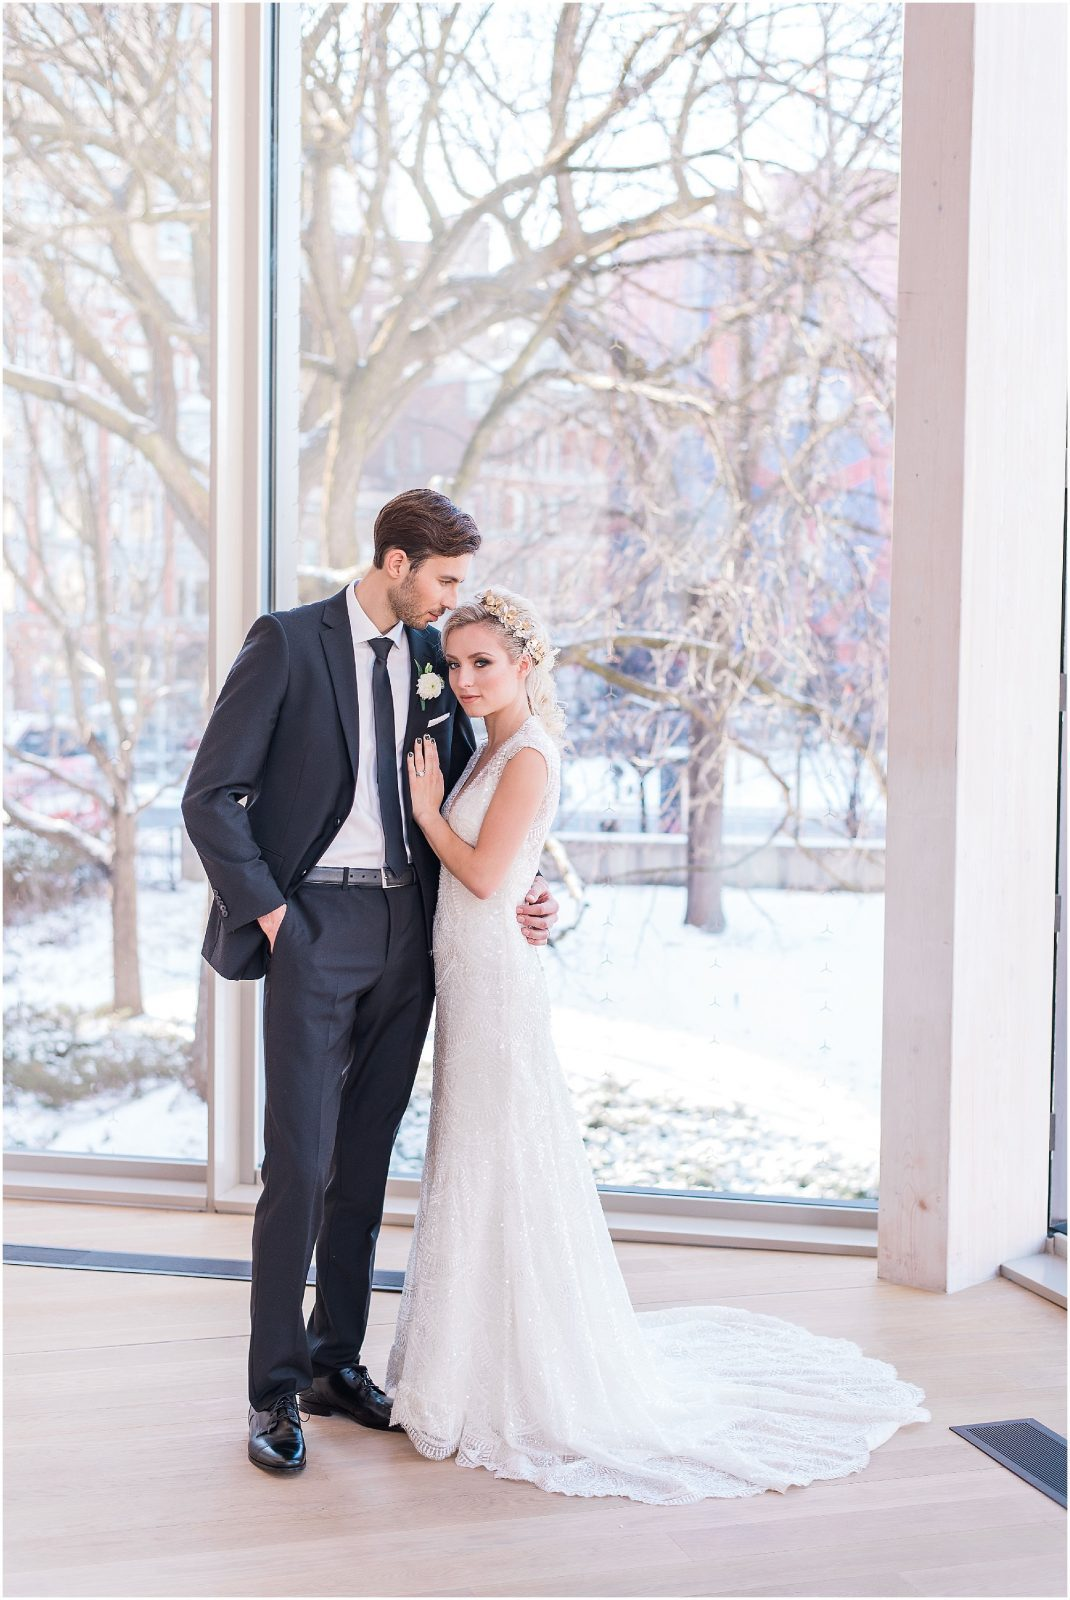 Wedding O'Born Room NAC Ottawa - New Years Glam Wedding Inspiration - beaded wedding dress